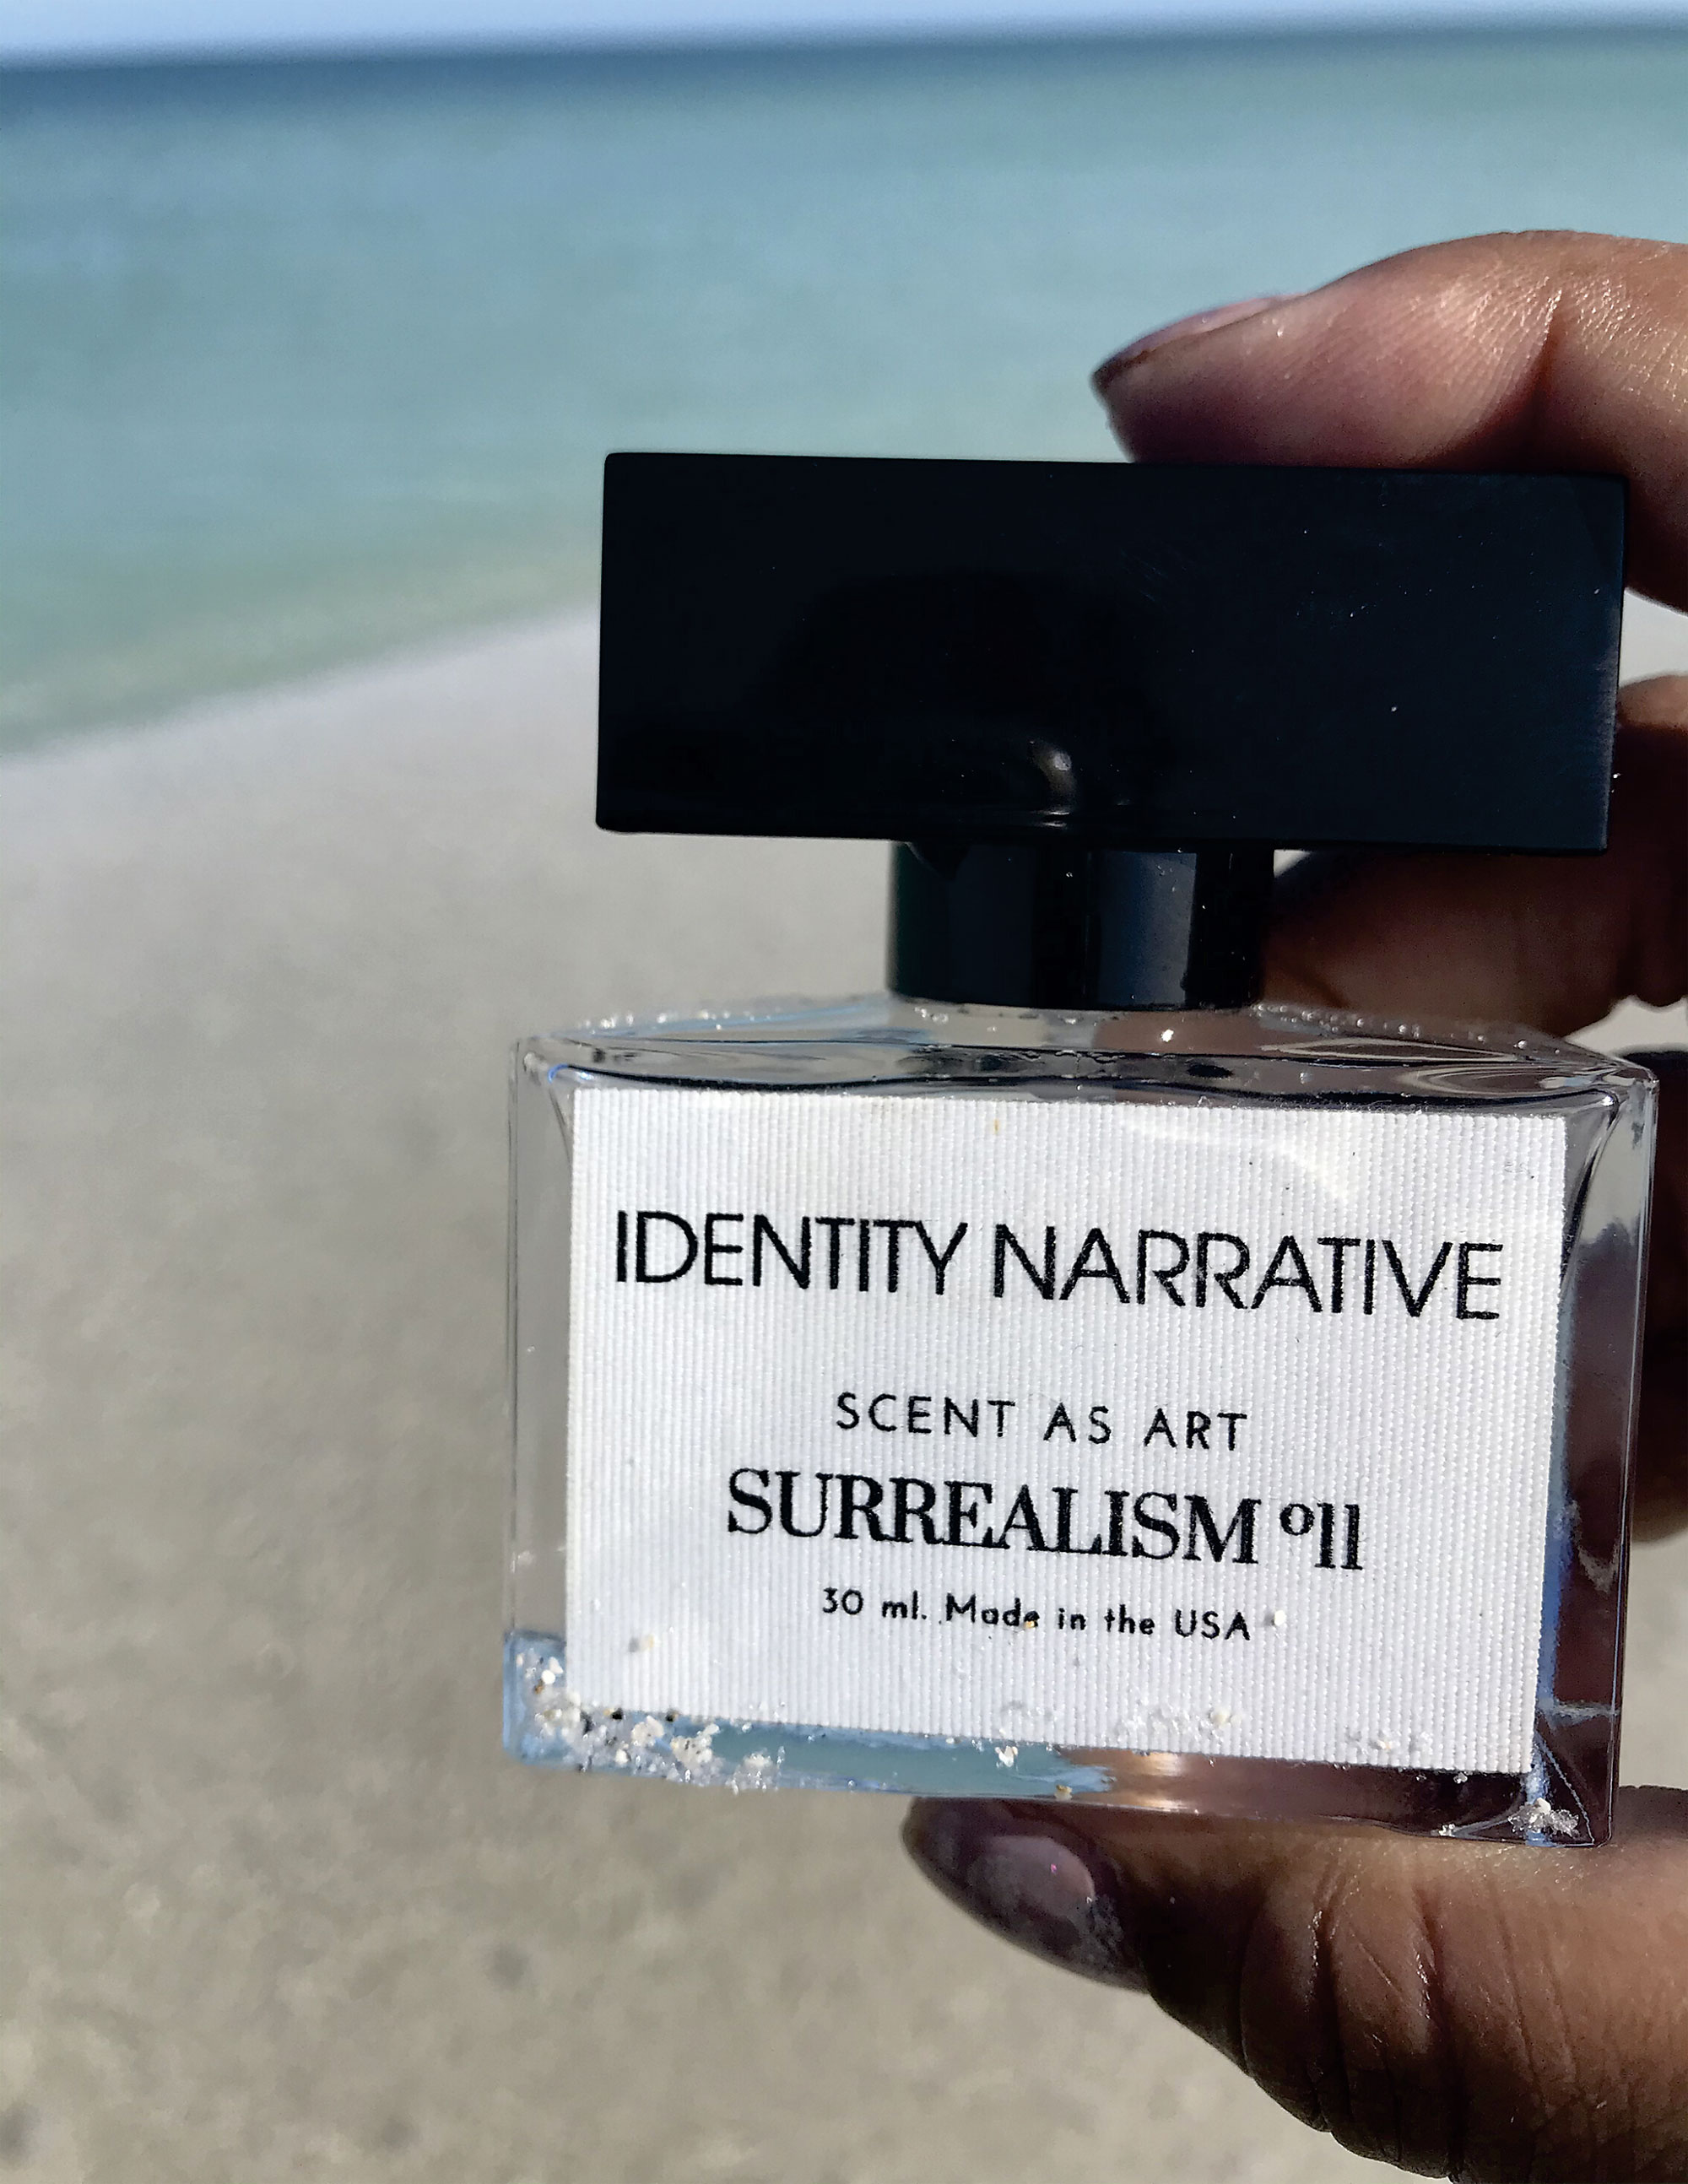 Surrealism 11 by Identity Narrative